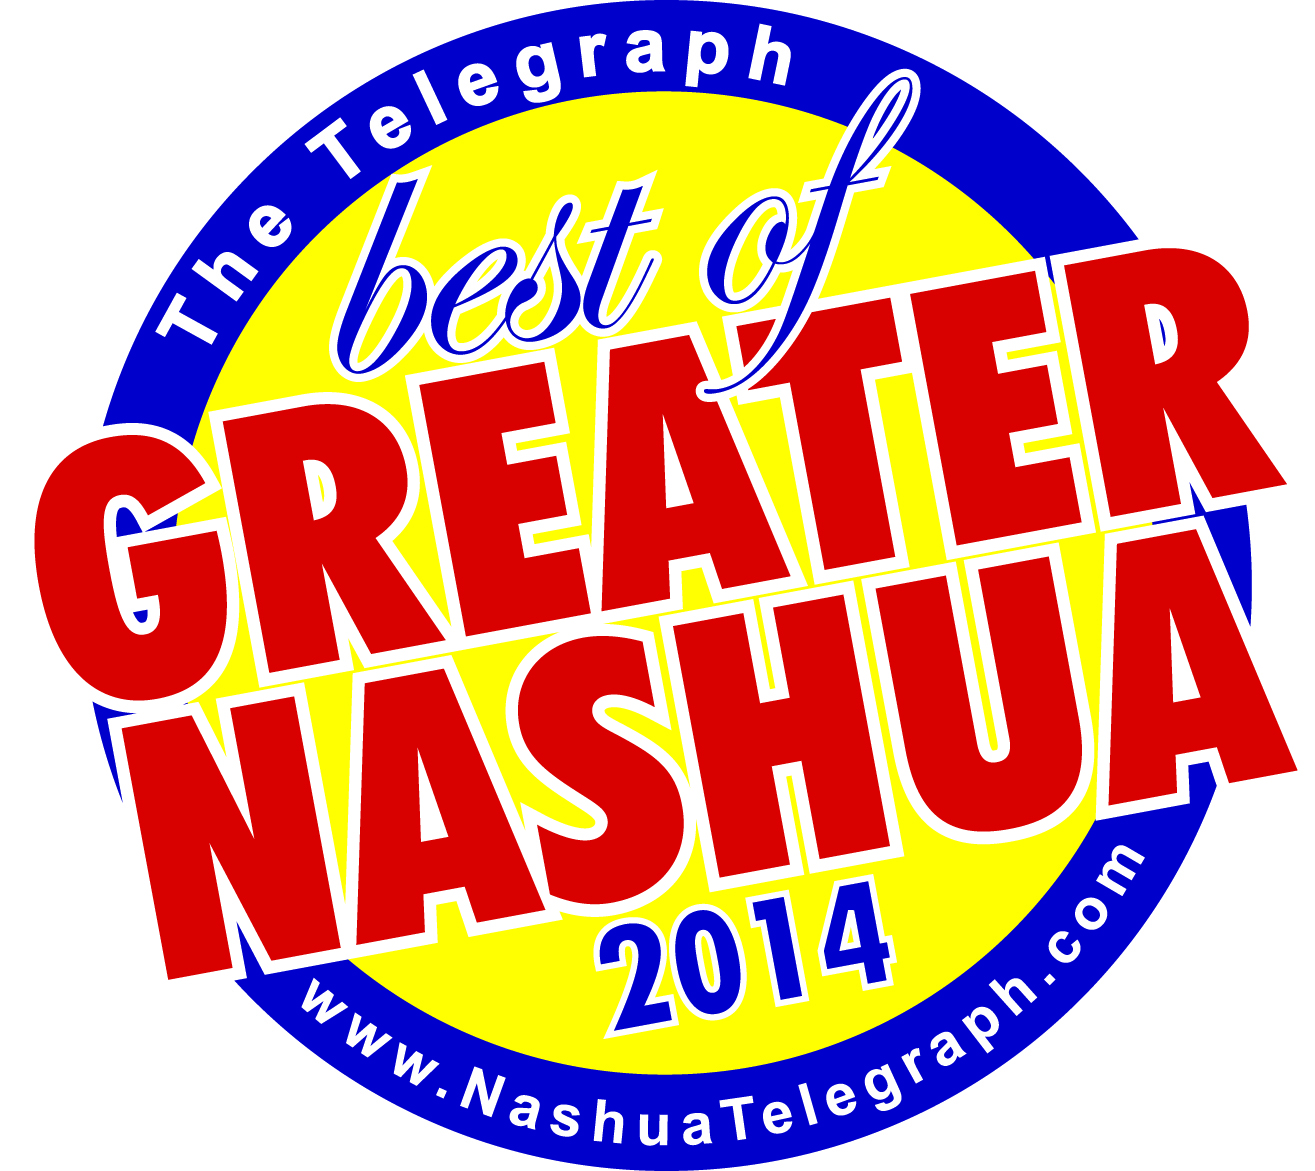 The Nashua Telegraph, Best of Greater Nashua 2014